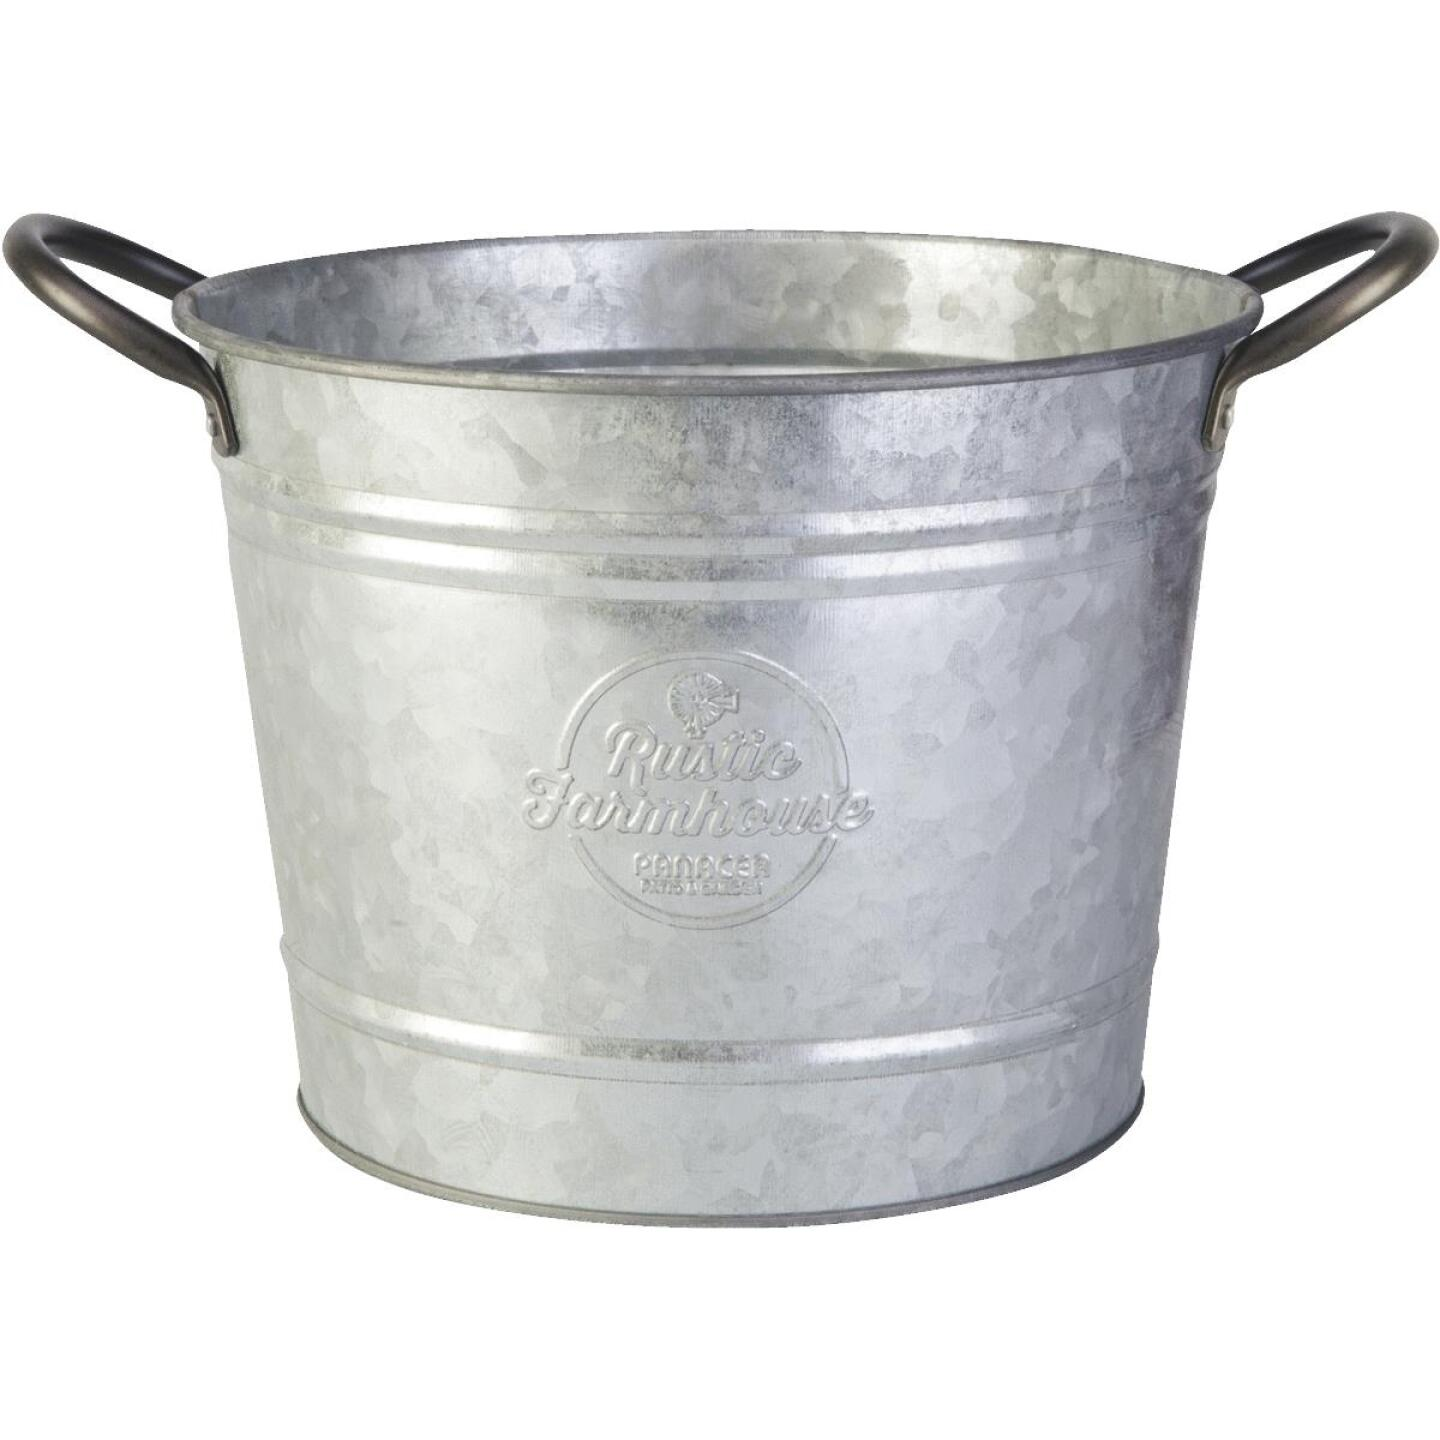 Panacea 8 In. Galvanized Steel Washtub Planter Image 1